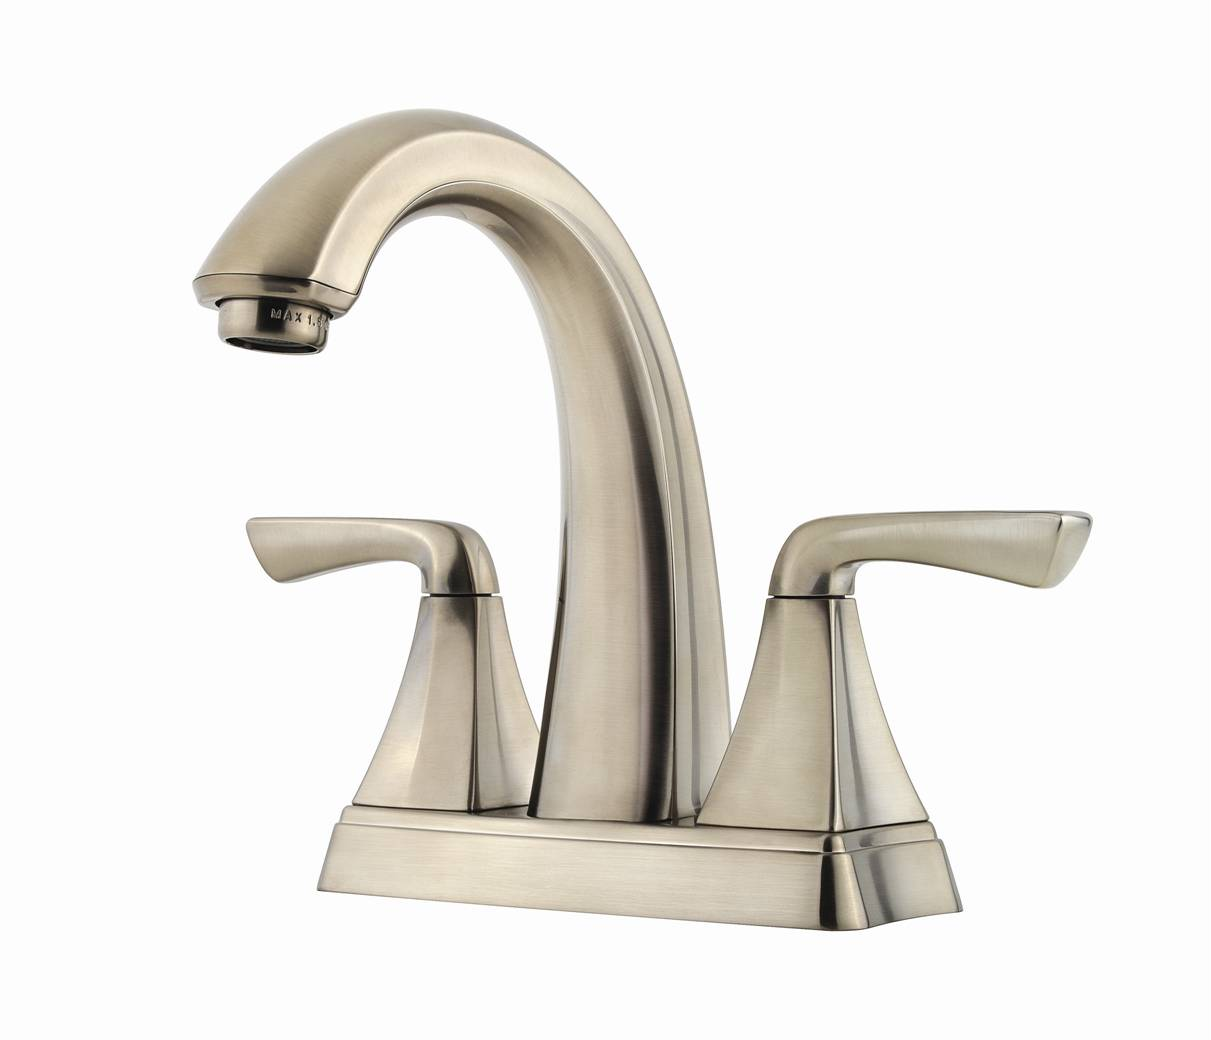 Price pfister debuts elegant selia bath faucet for Pictures of bathroom faucets